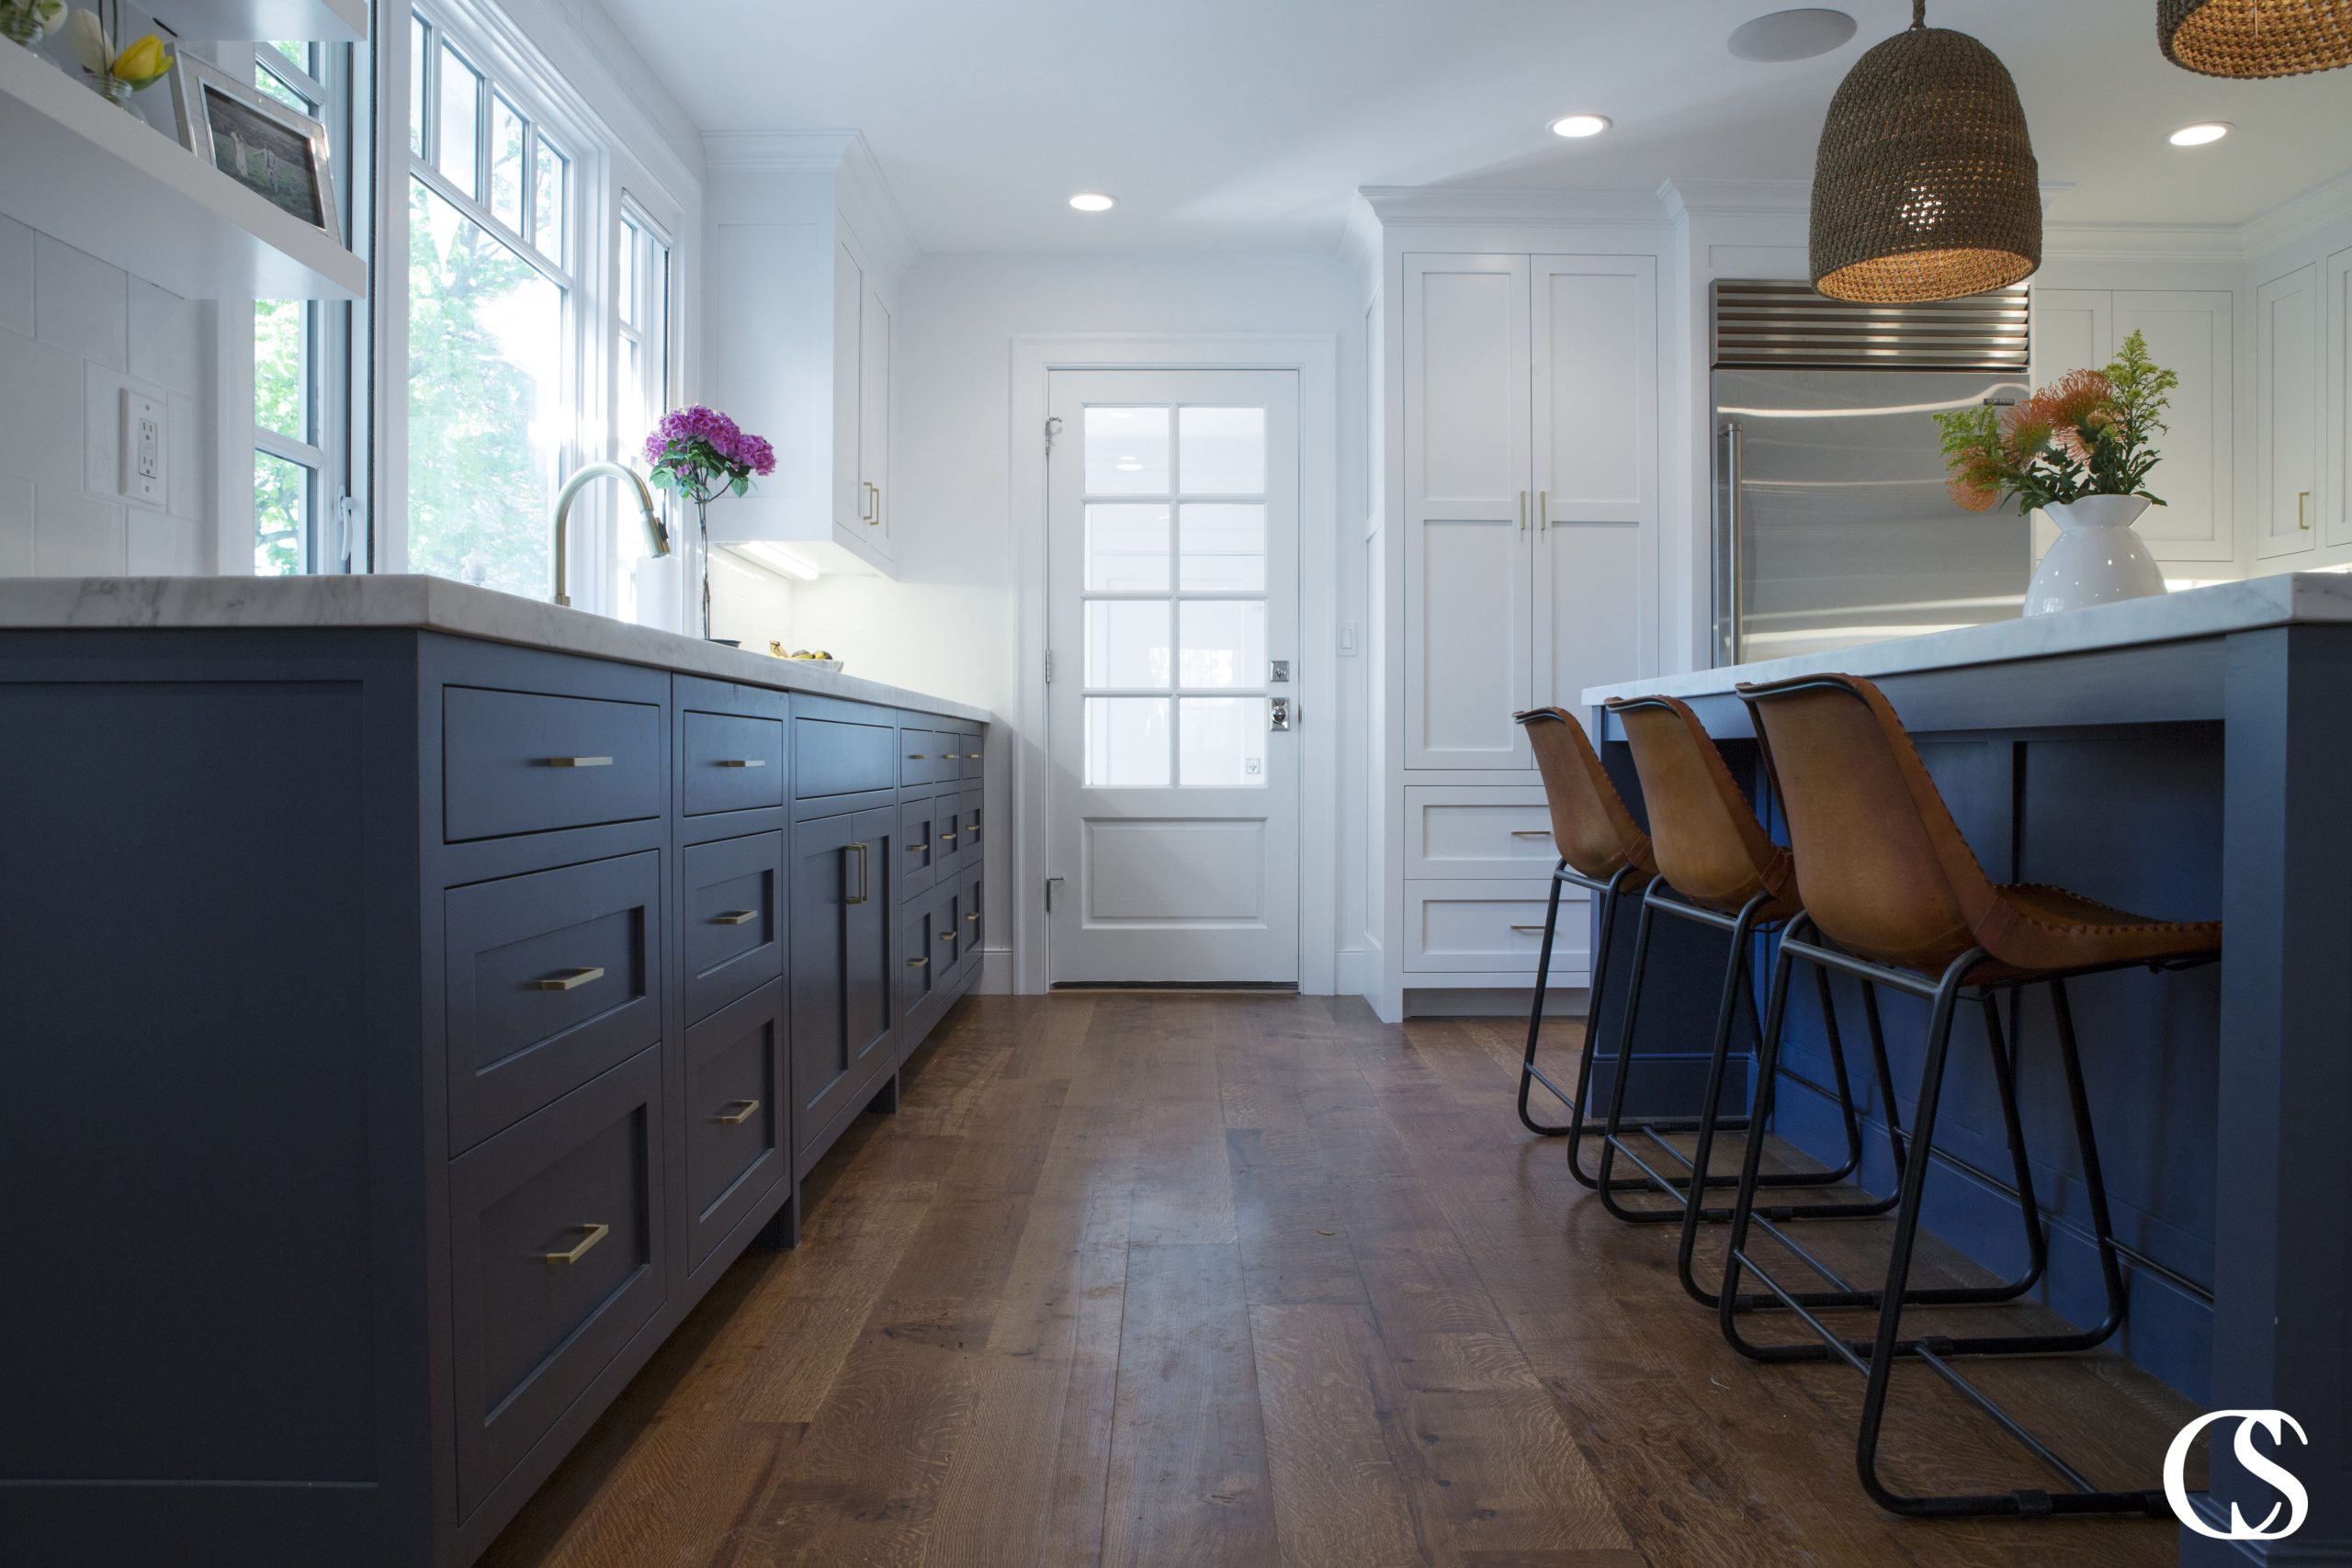 Blue kitchens are popular for a reason! Hale Navy helps these custom kitchen cabinets play perfectly with the white walls and upper cabinetry as well as the warmer tones found in the floor and chairs.